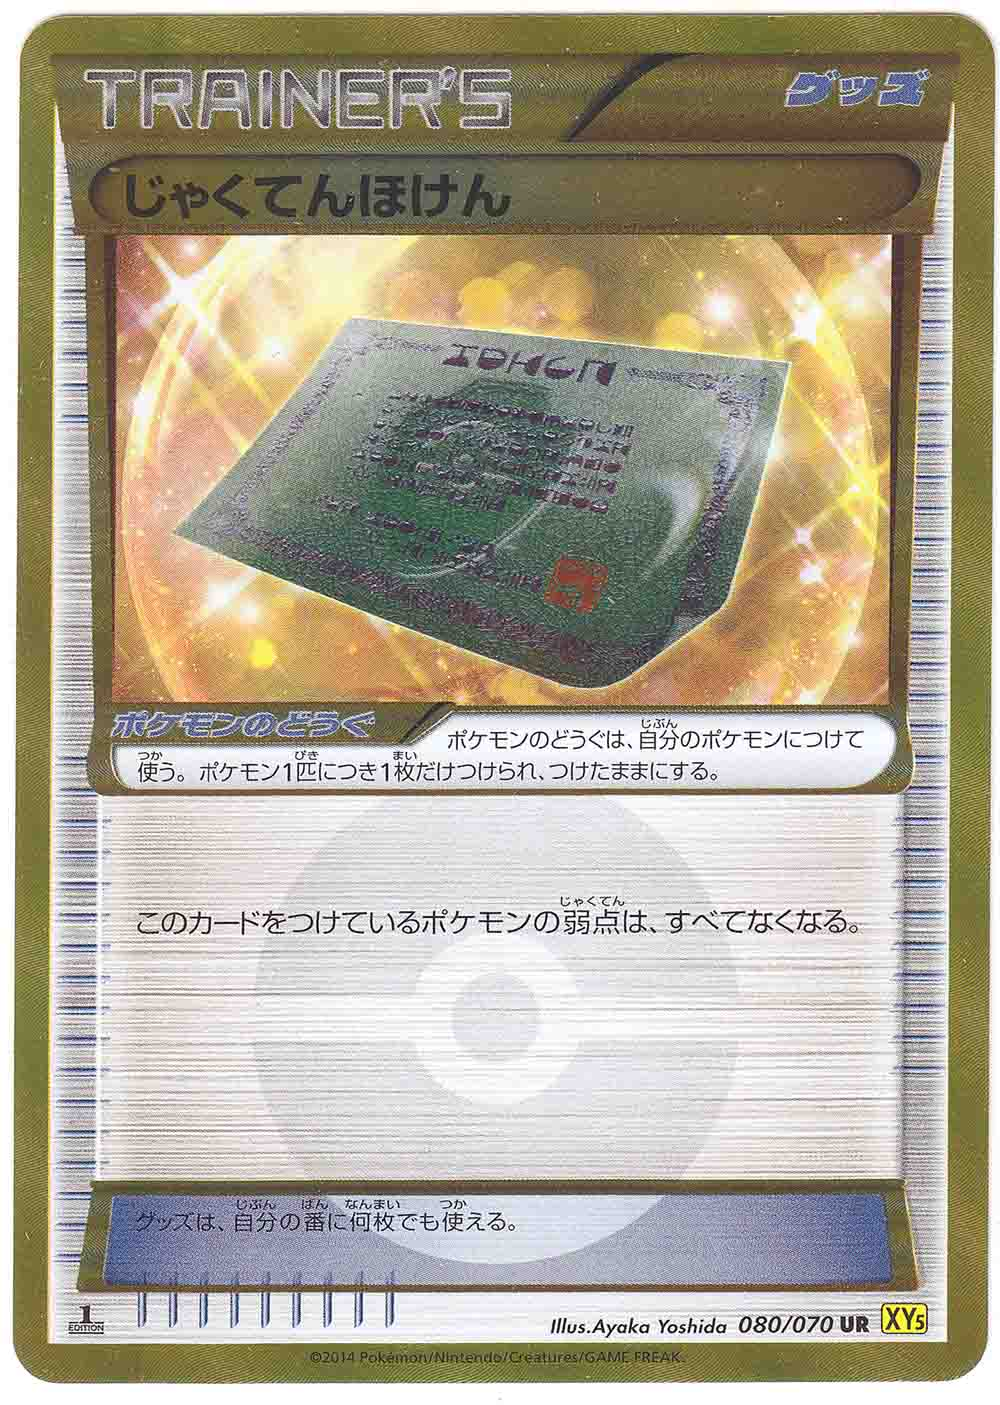 Weakness Policy 080 070 Xy5 1st Paper Moon Japan Annex That strategy require you to activate weakness policy and steam engine with same move dealt to coalossal. paper moon japan annex